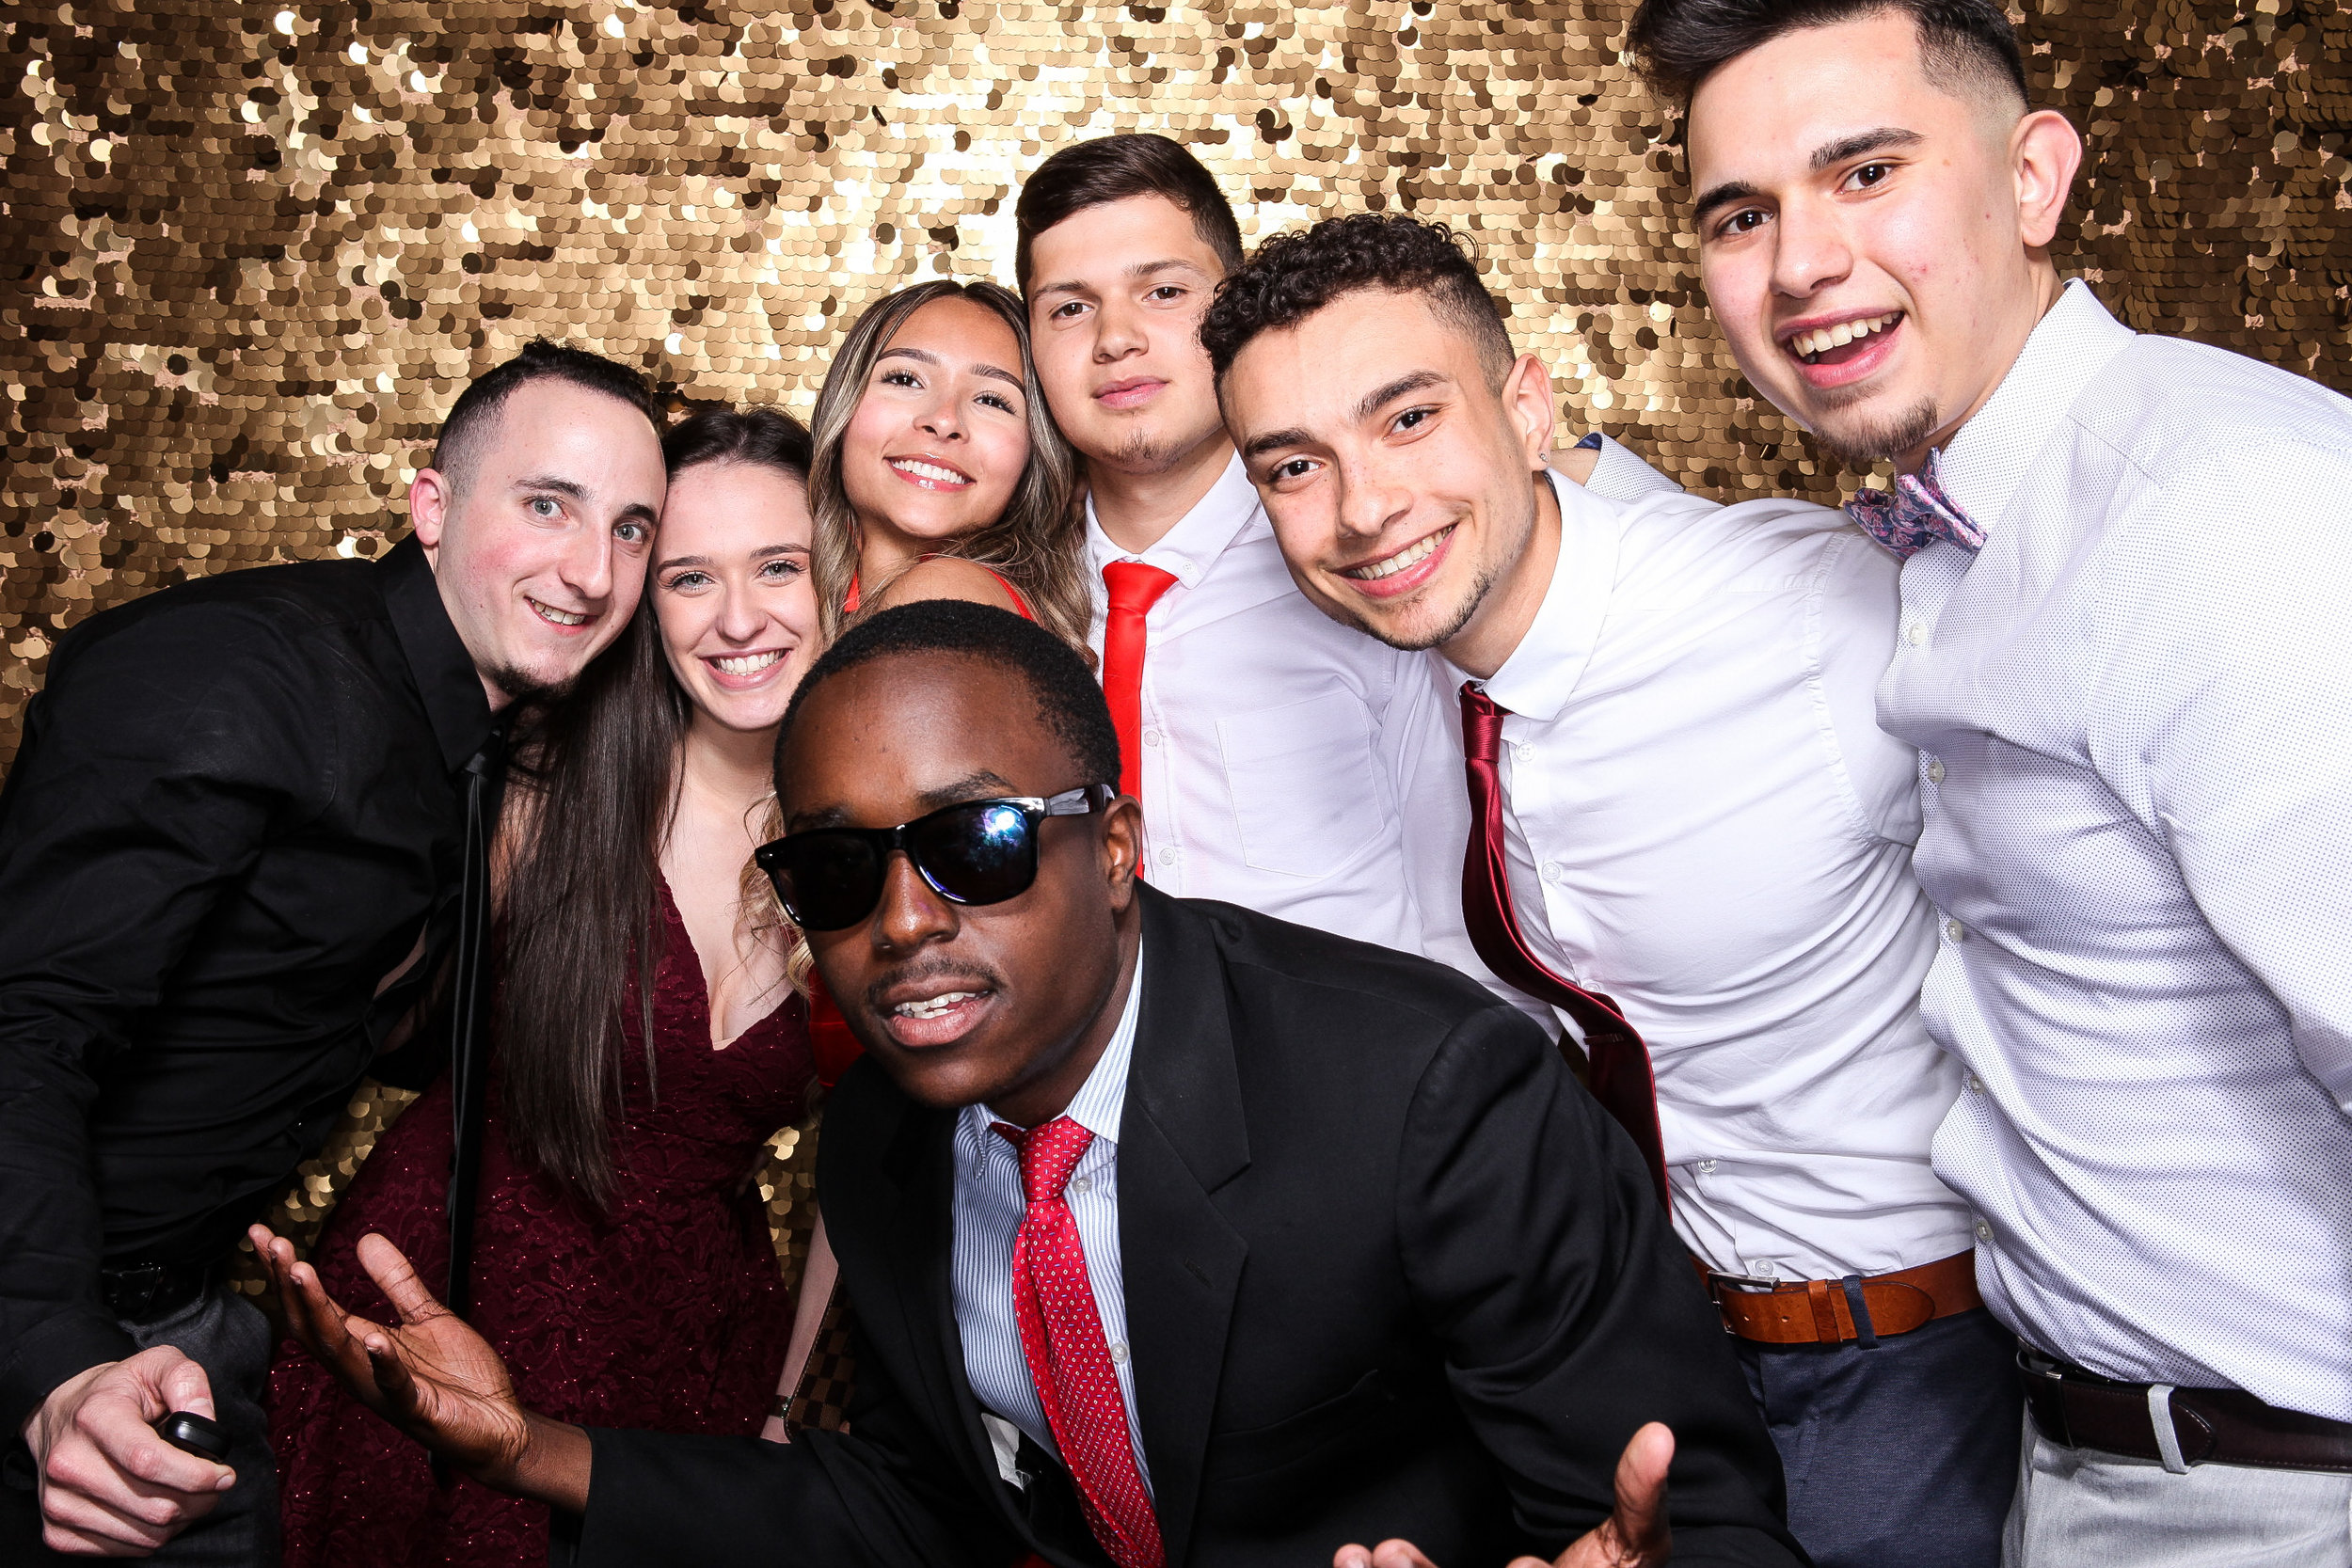 20190503_Adelphi_Senior_Formal-109.jpg